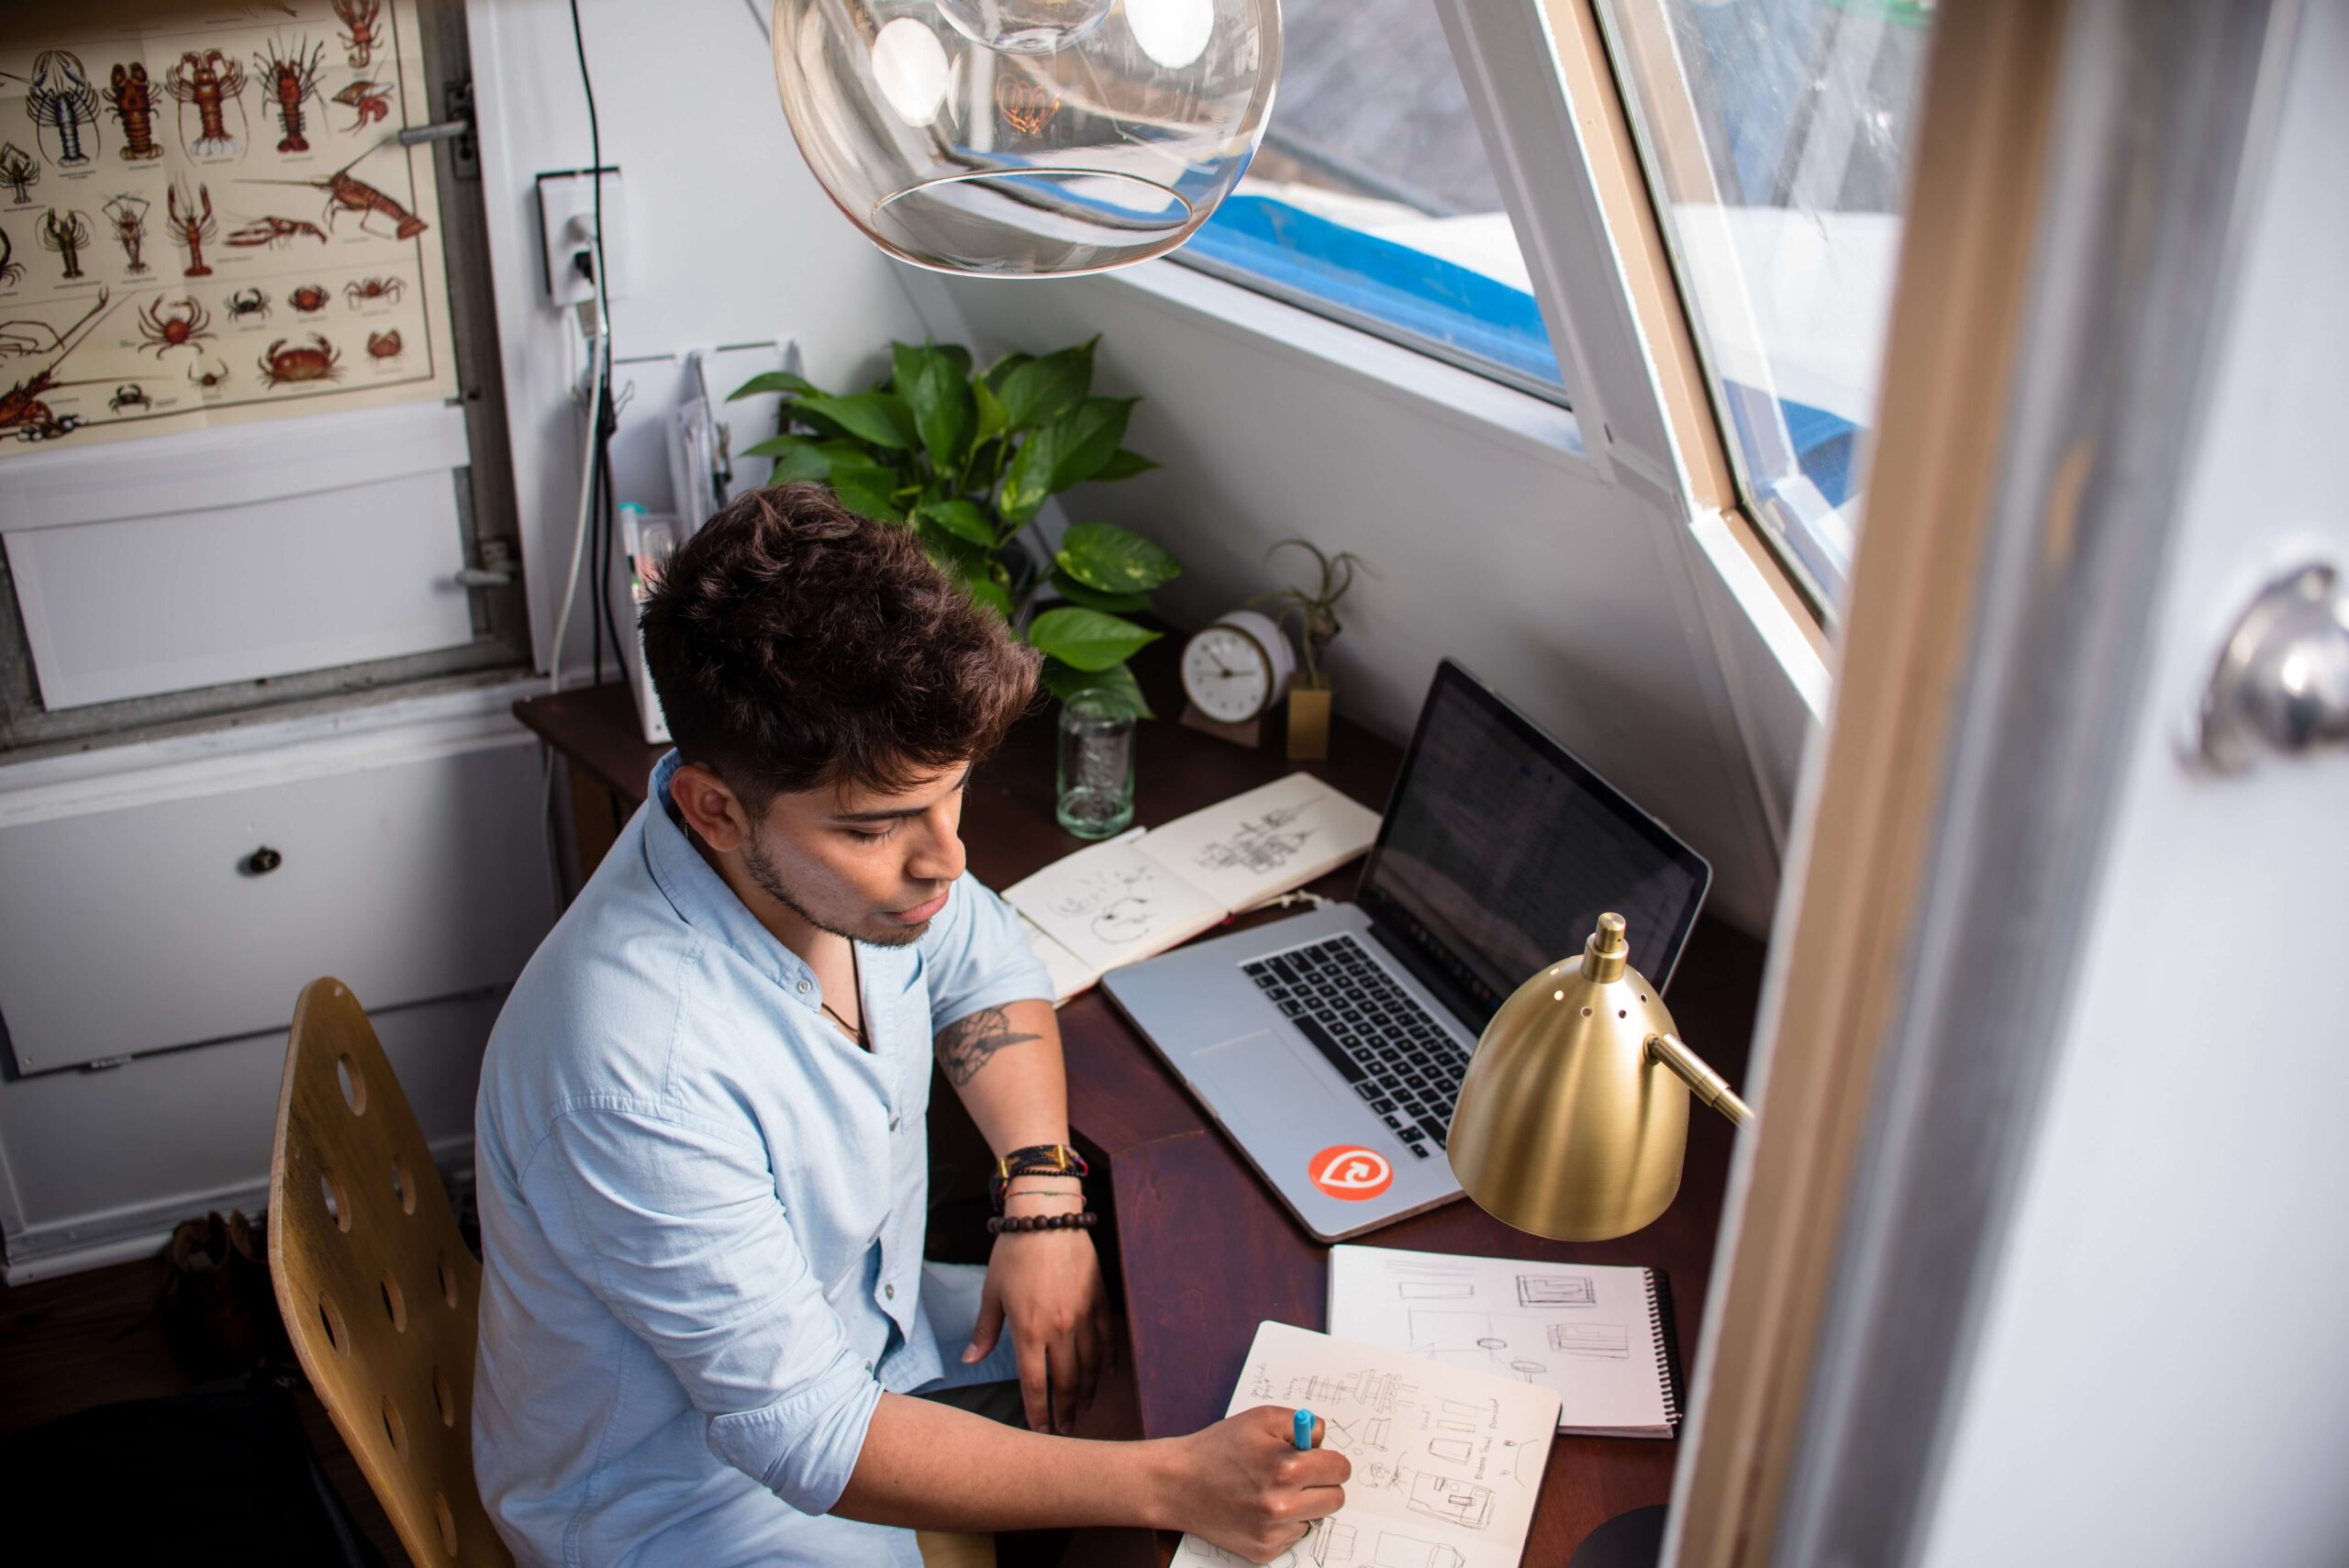 Looking For Remote Work? Don't Pay Money To Find The Opportunities